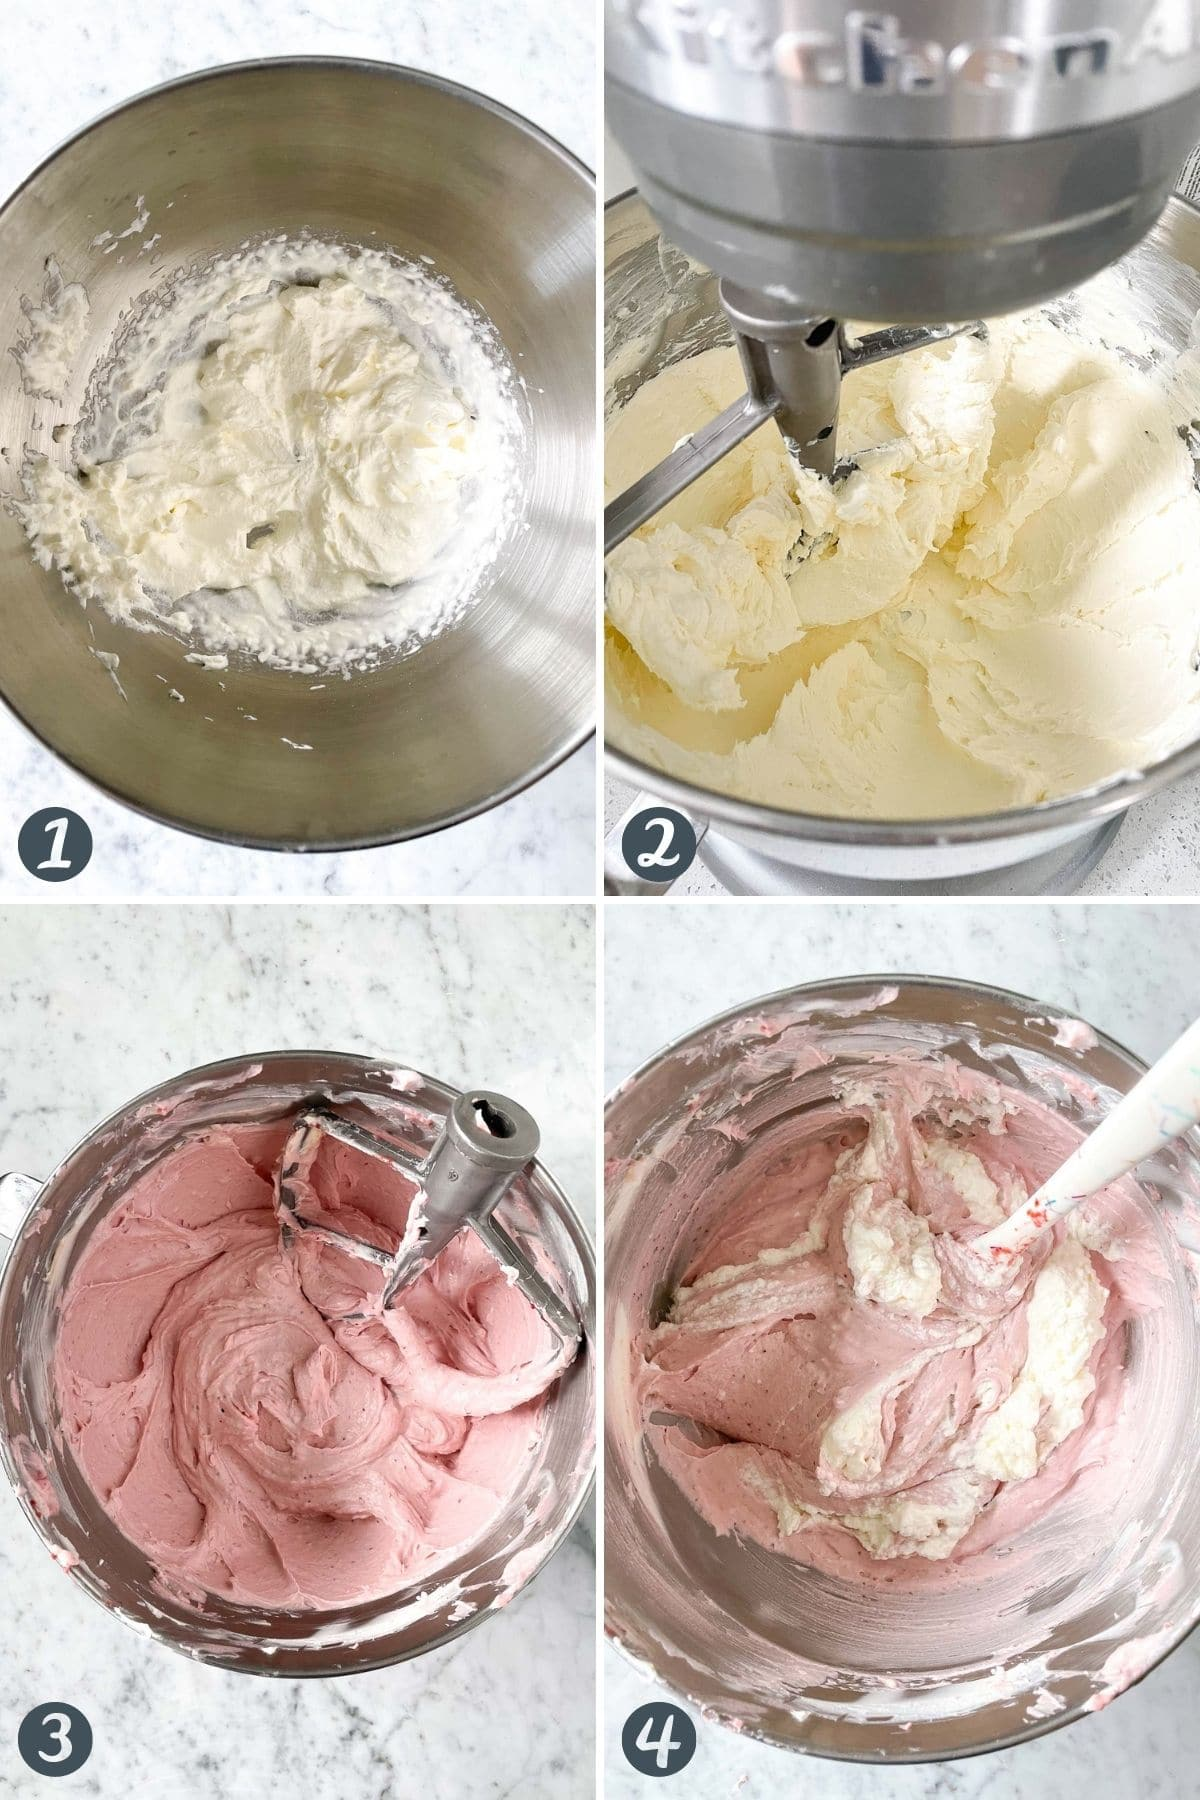 Steps for making the cheesecake filling